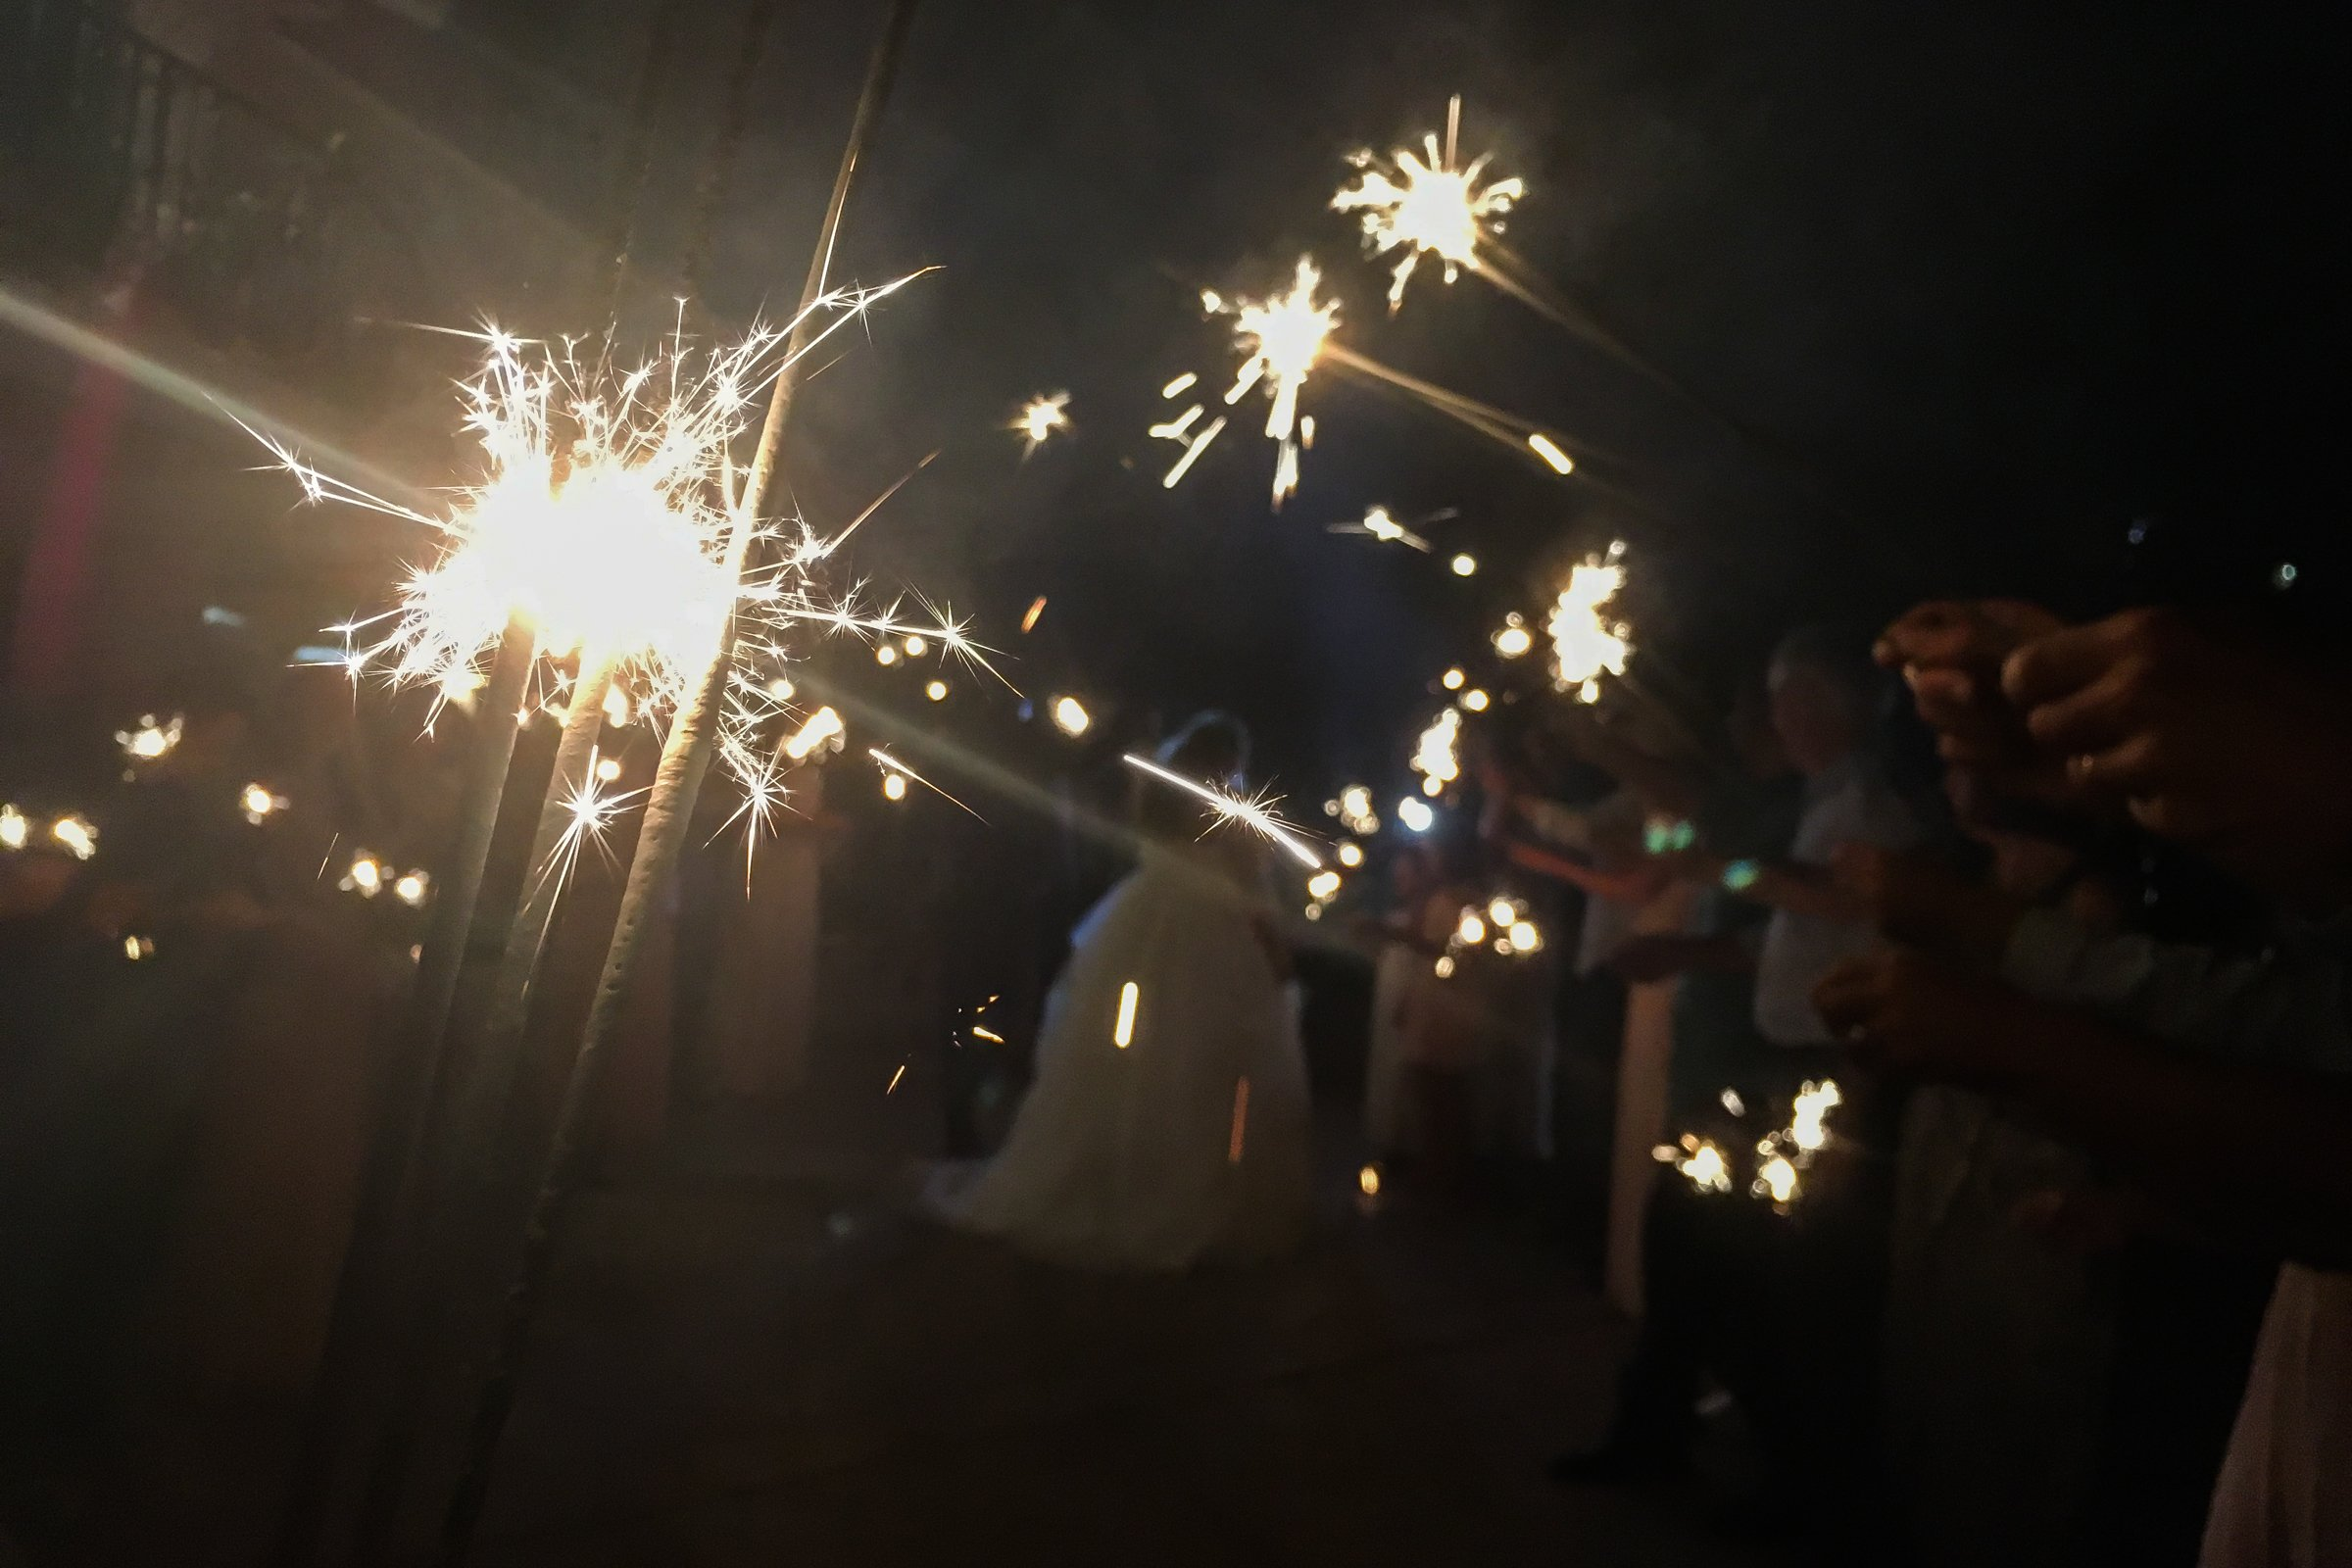 Sparklers in Night at Wedding